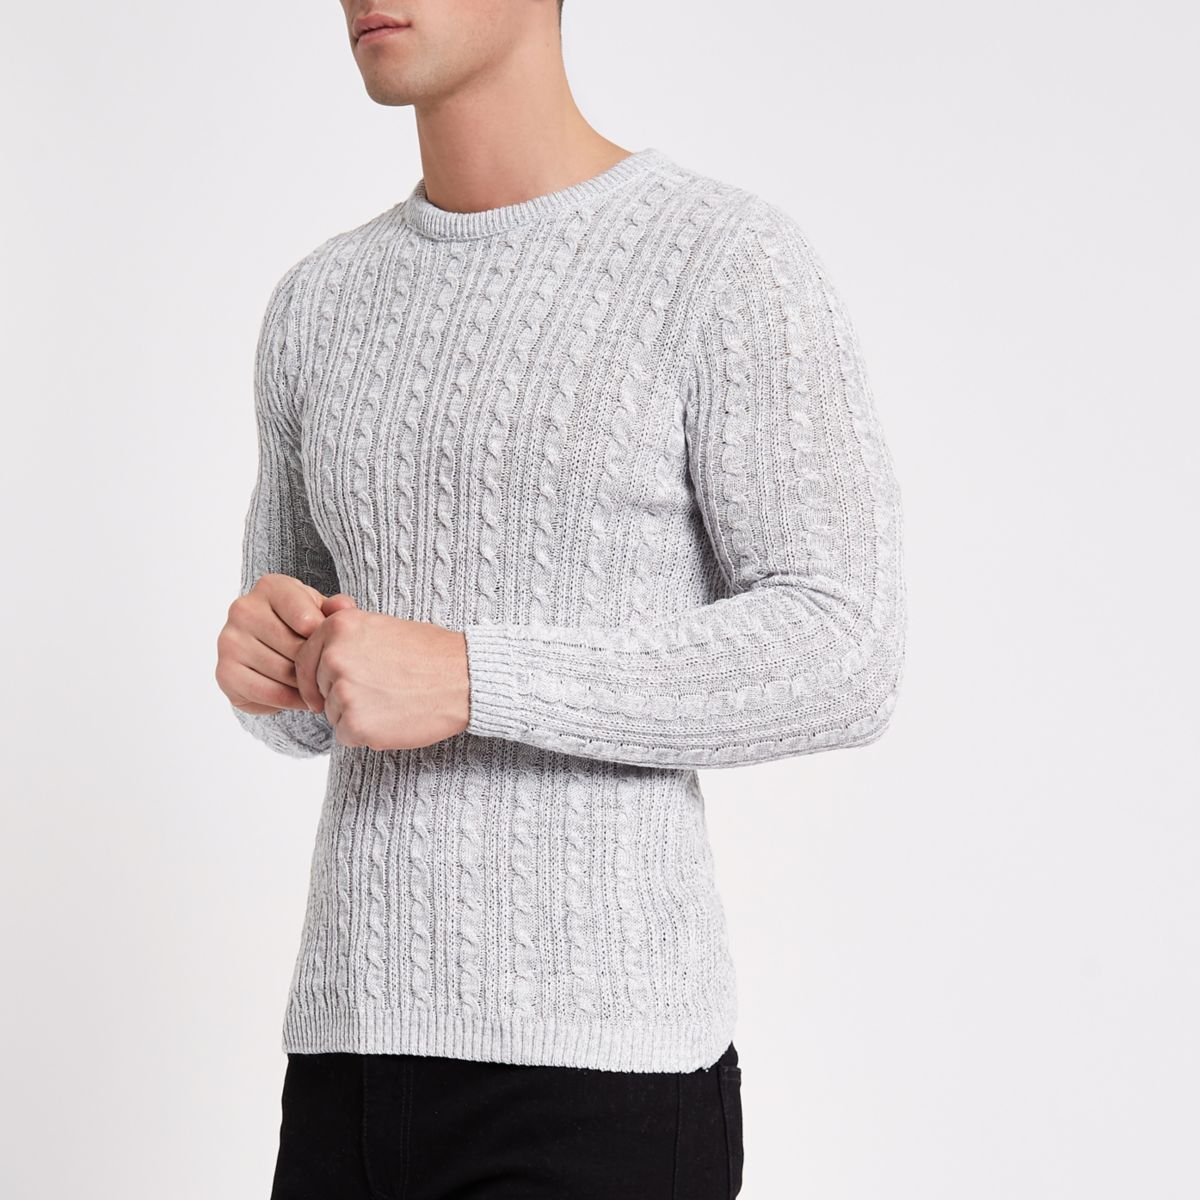 Grey cable knit muscle fit sweater - Sweaters - Sweaters ...